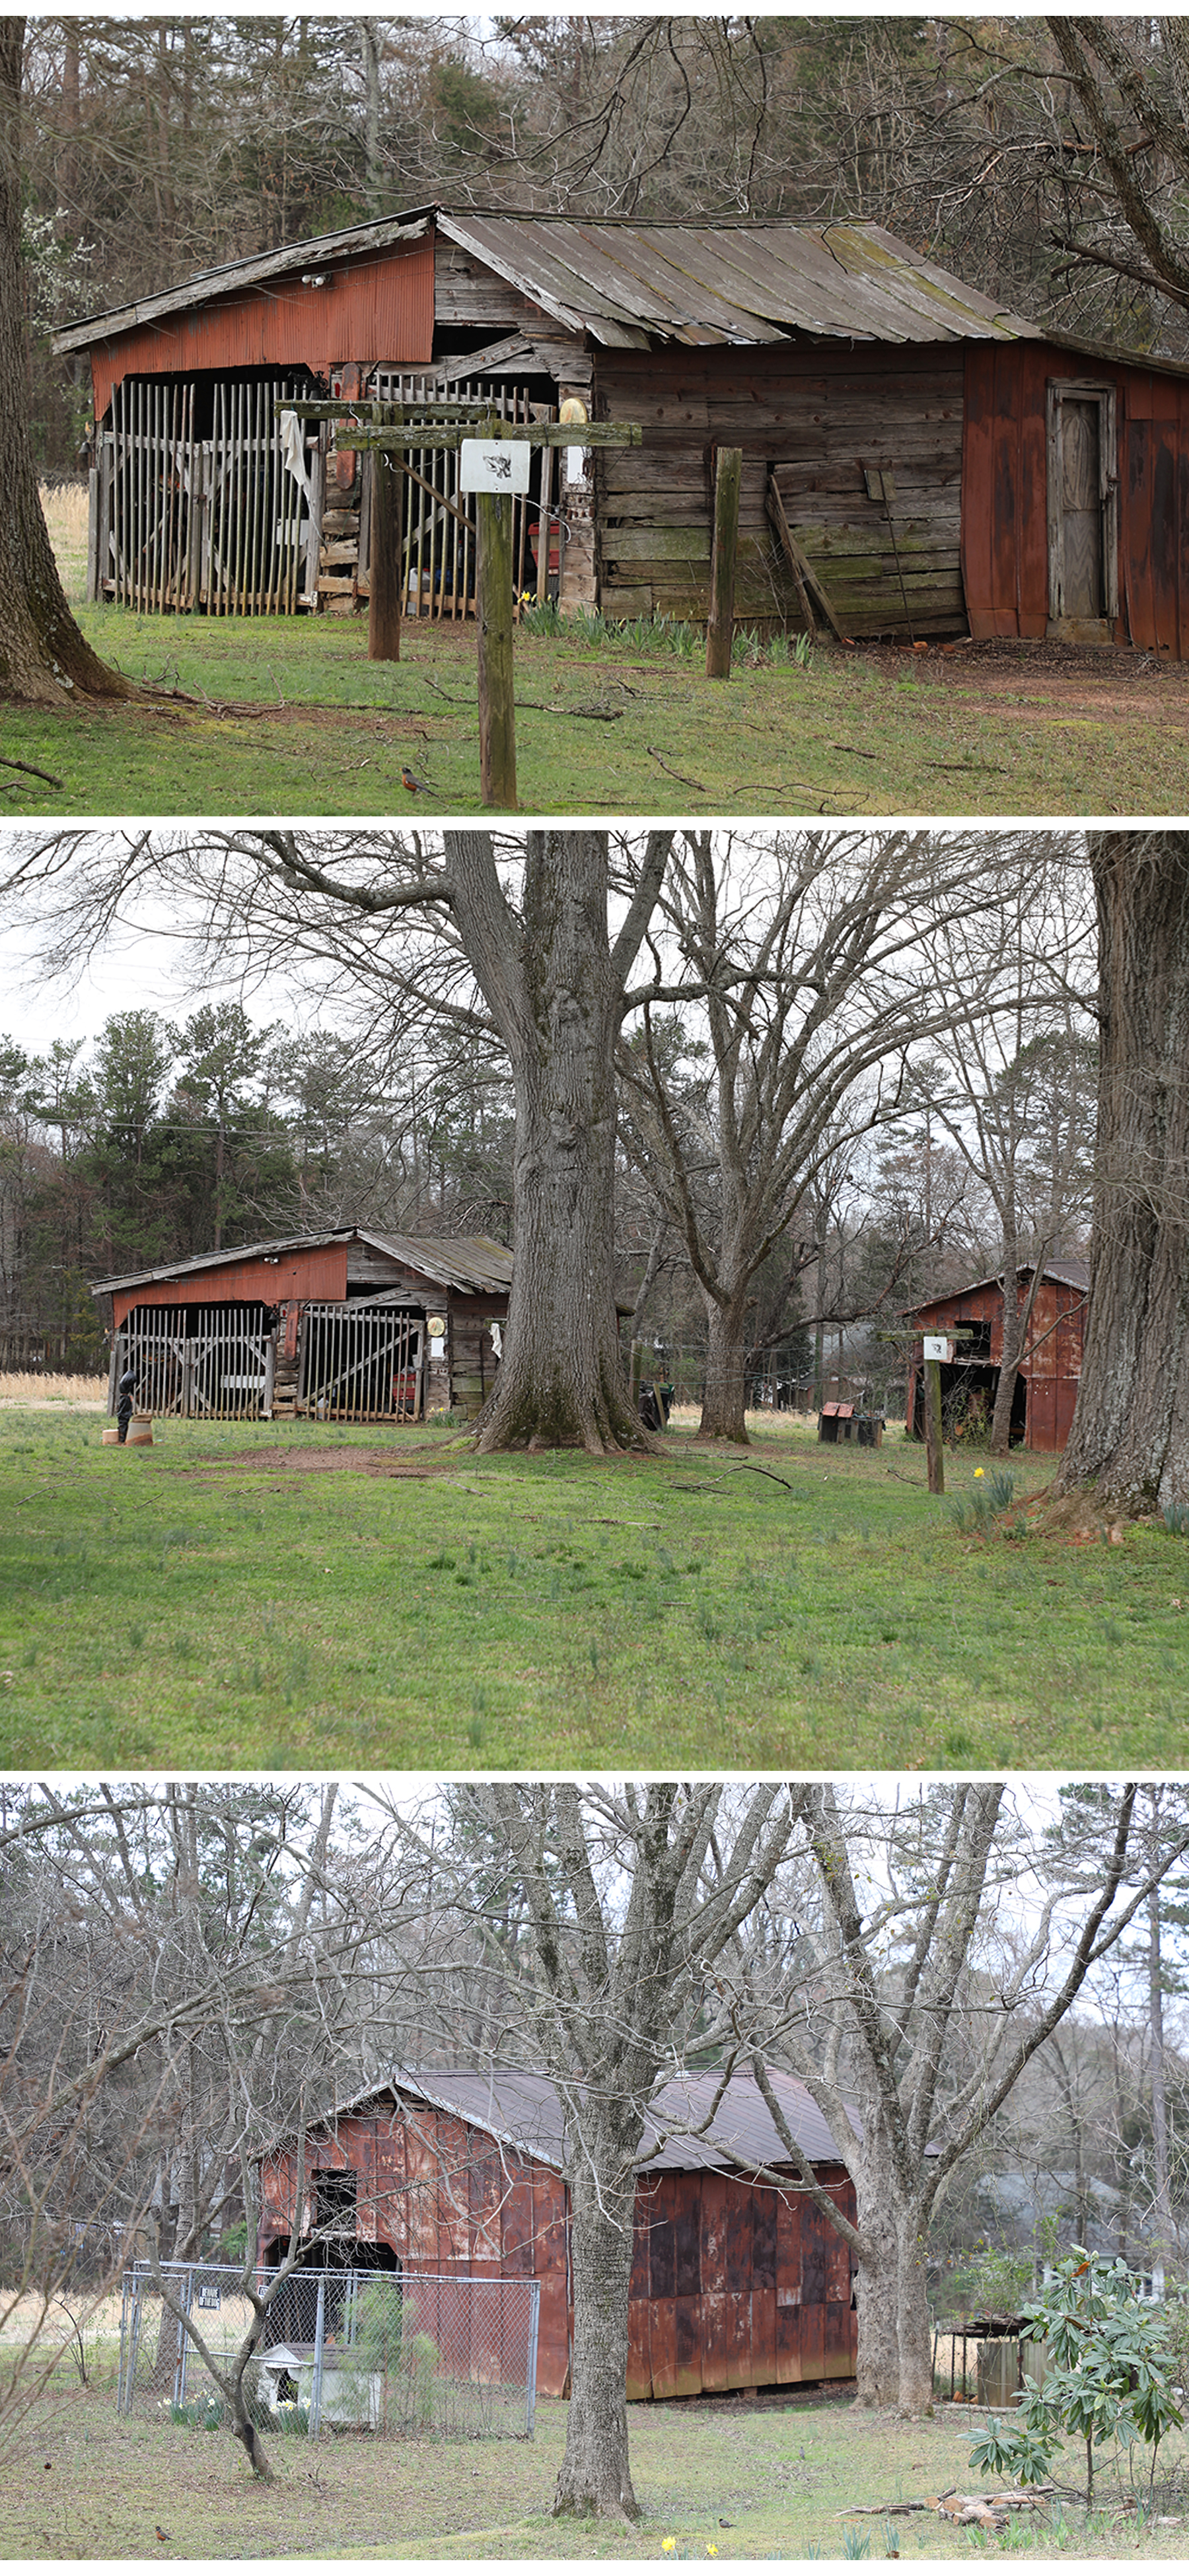 The Helms Farm: This farmland was bought in the 40s from the Stillwell family, originally owned by the Harkeys. The barns were probably built around the same time. -